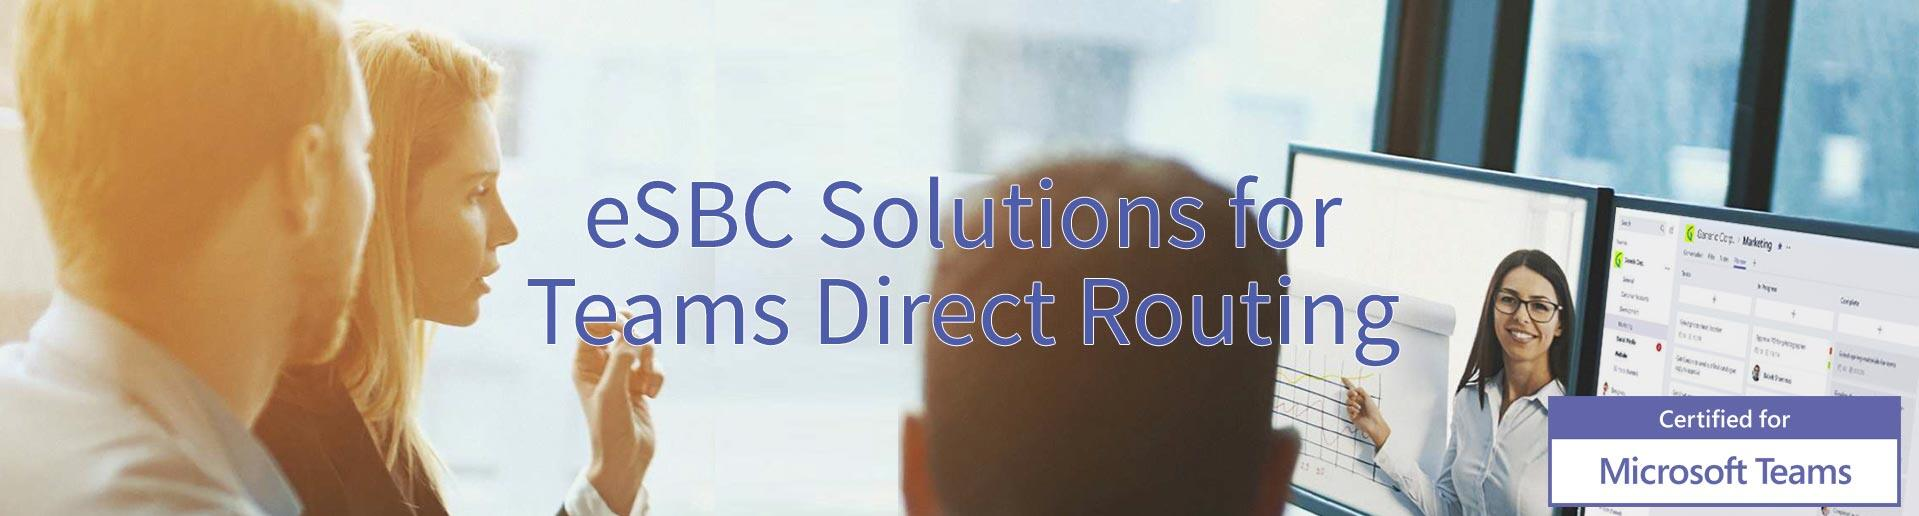 eSBC Solutions for Teams Direct Routing - CERTIFIED for Microsoft TEAMS